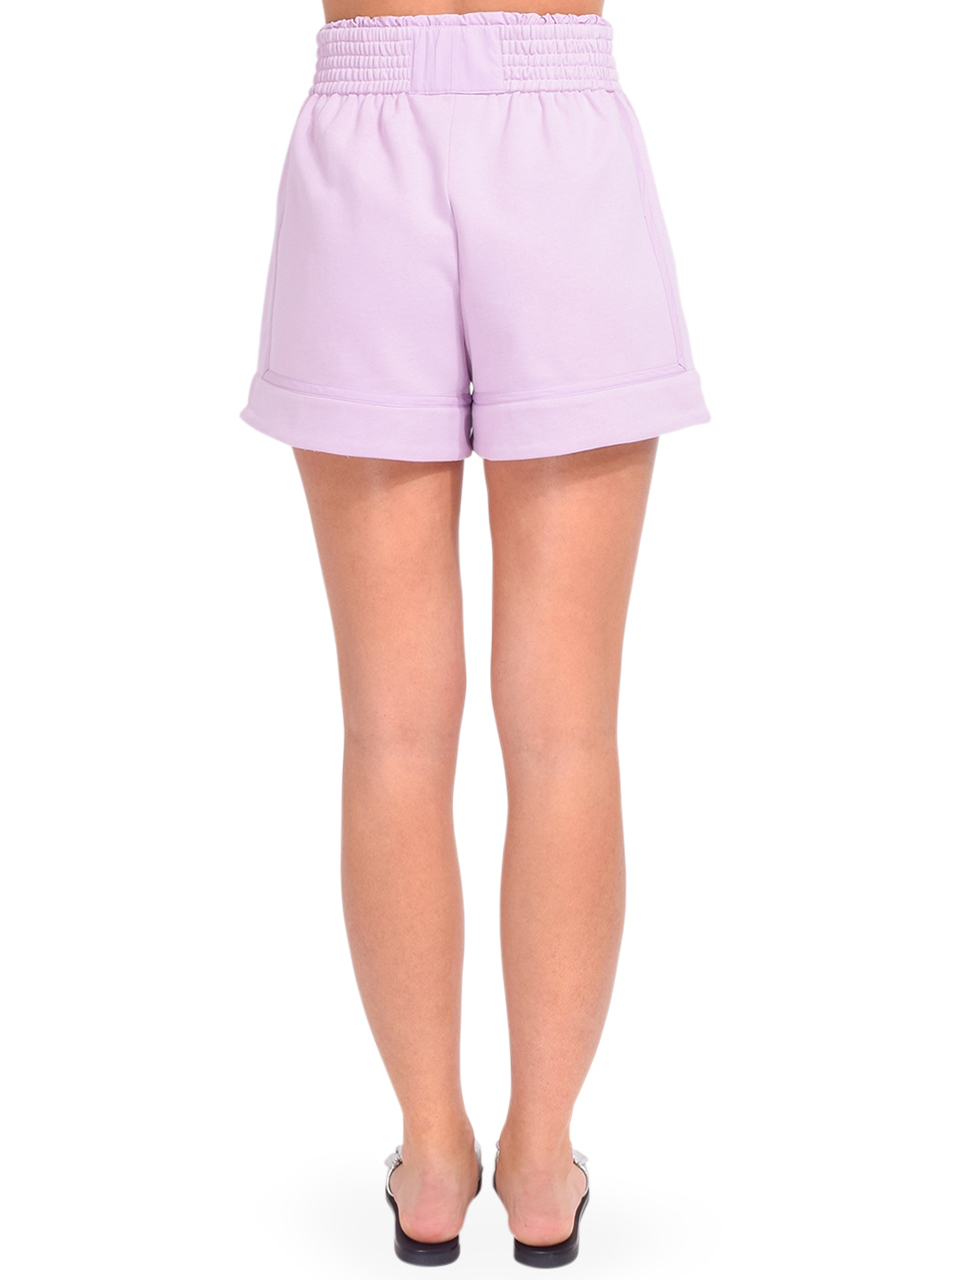 3.1 Phillip Lim French Terry Boxer Shorts in Lavender Back View